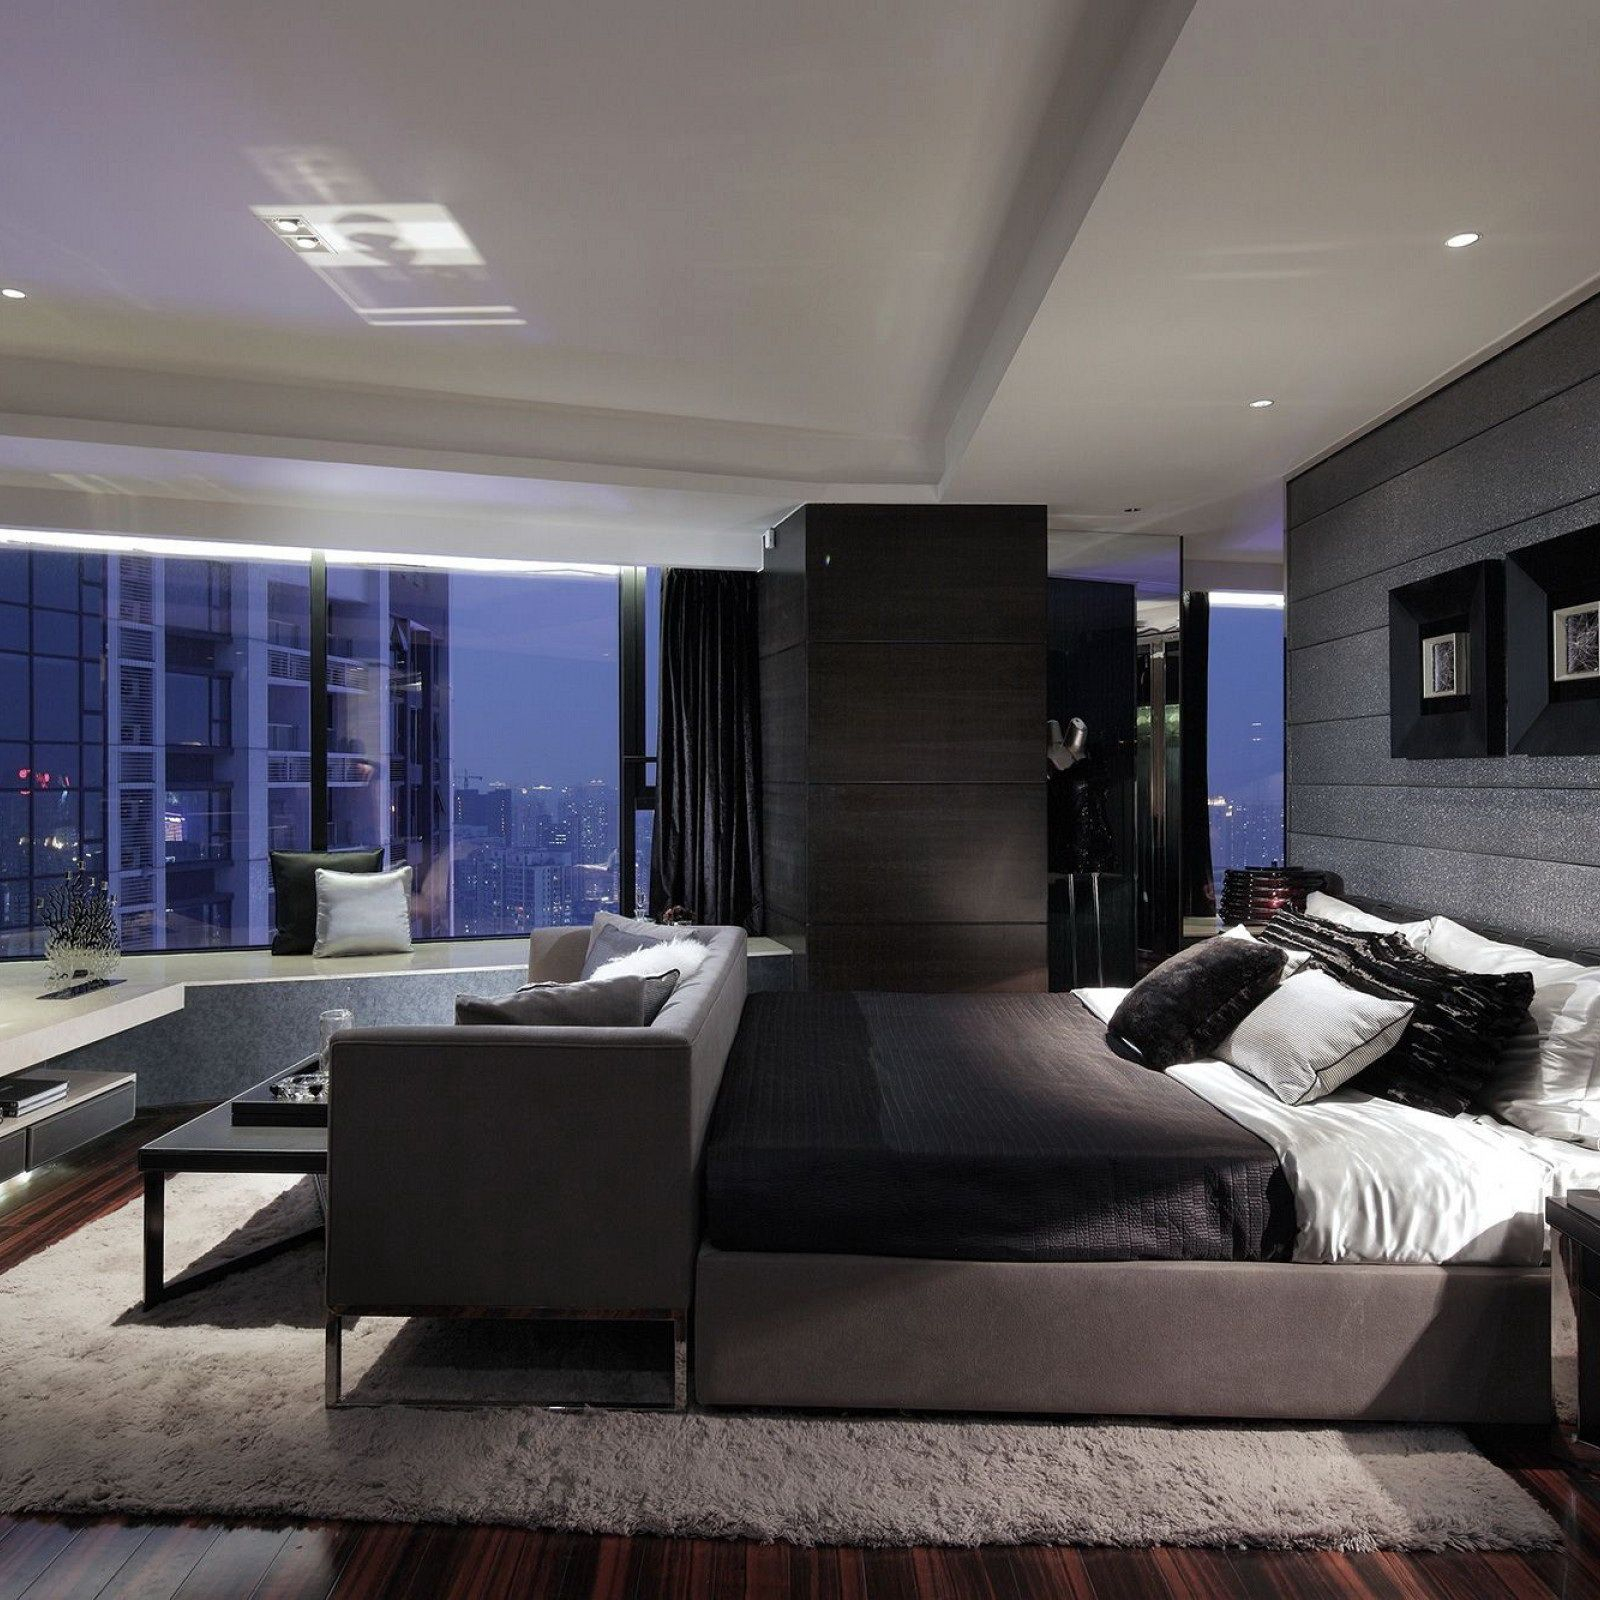 P I N T E R E S T Wavykiara Interior Luxurious Bedrooms